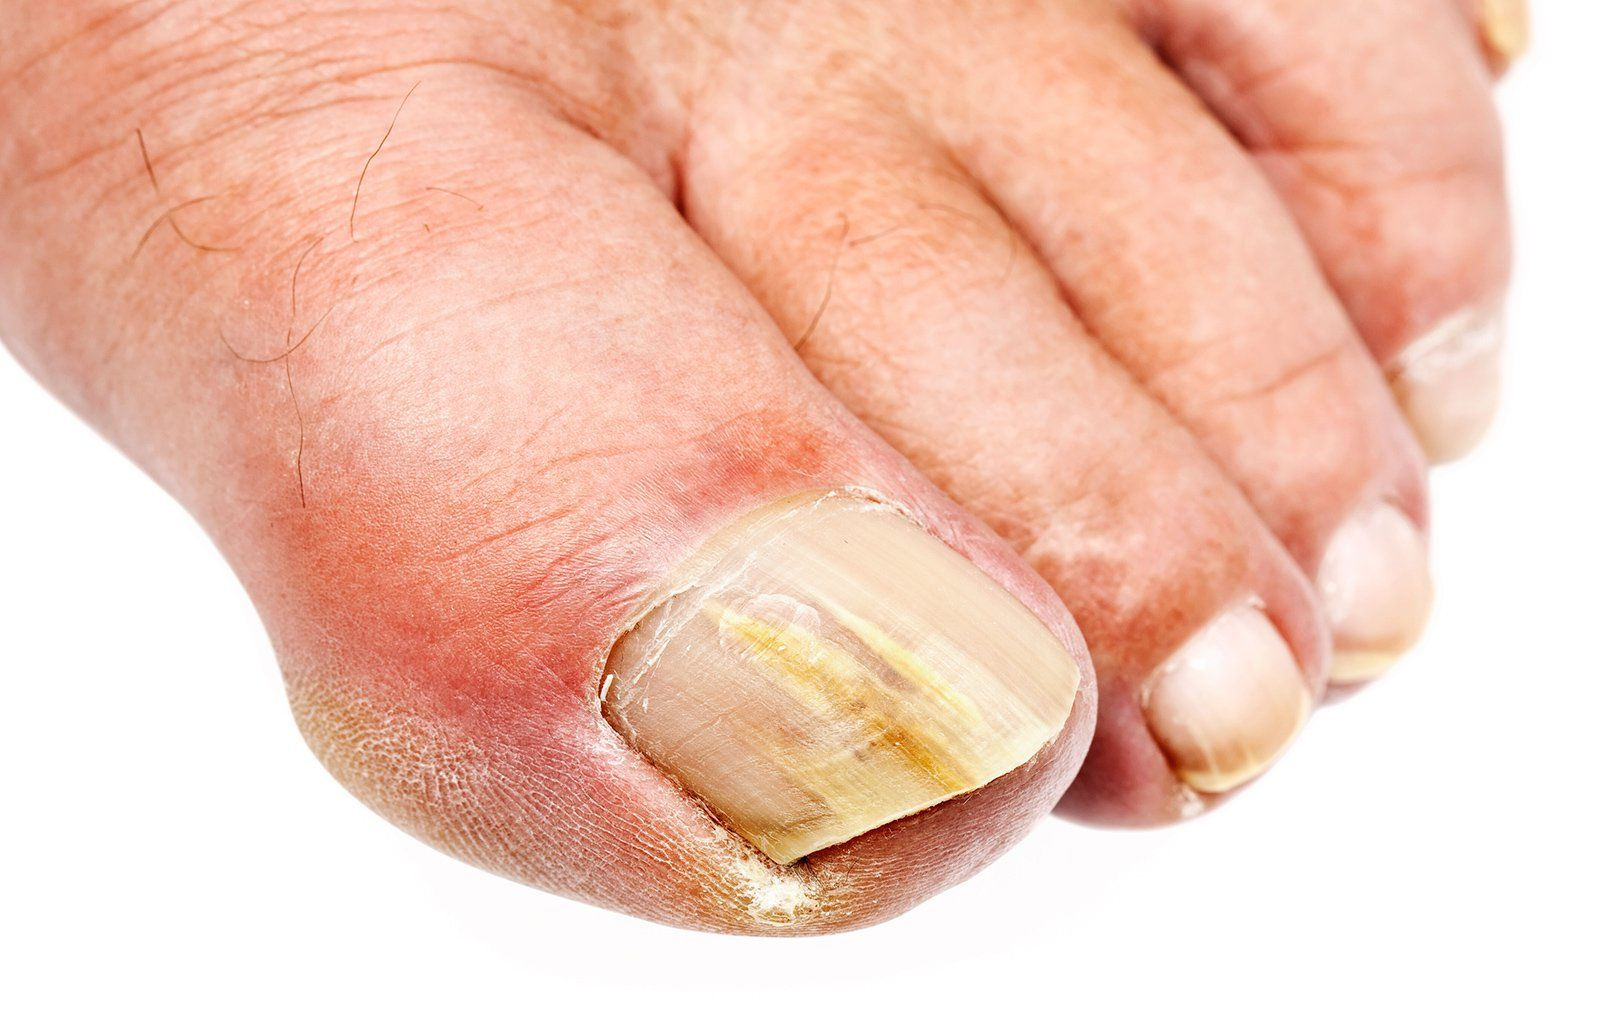 Discussion on this topic: 7 Ways To Keep Your Toenails From , 7-ways-to-keep-your-toenails-from/